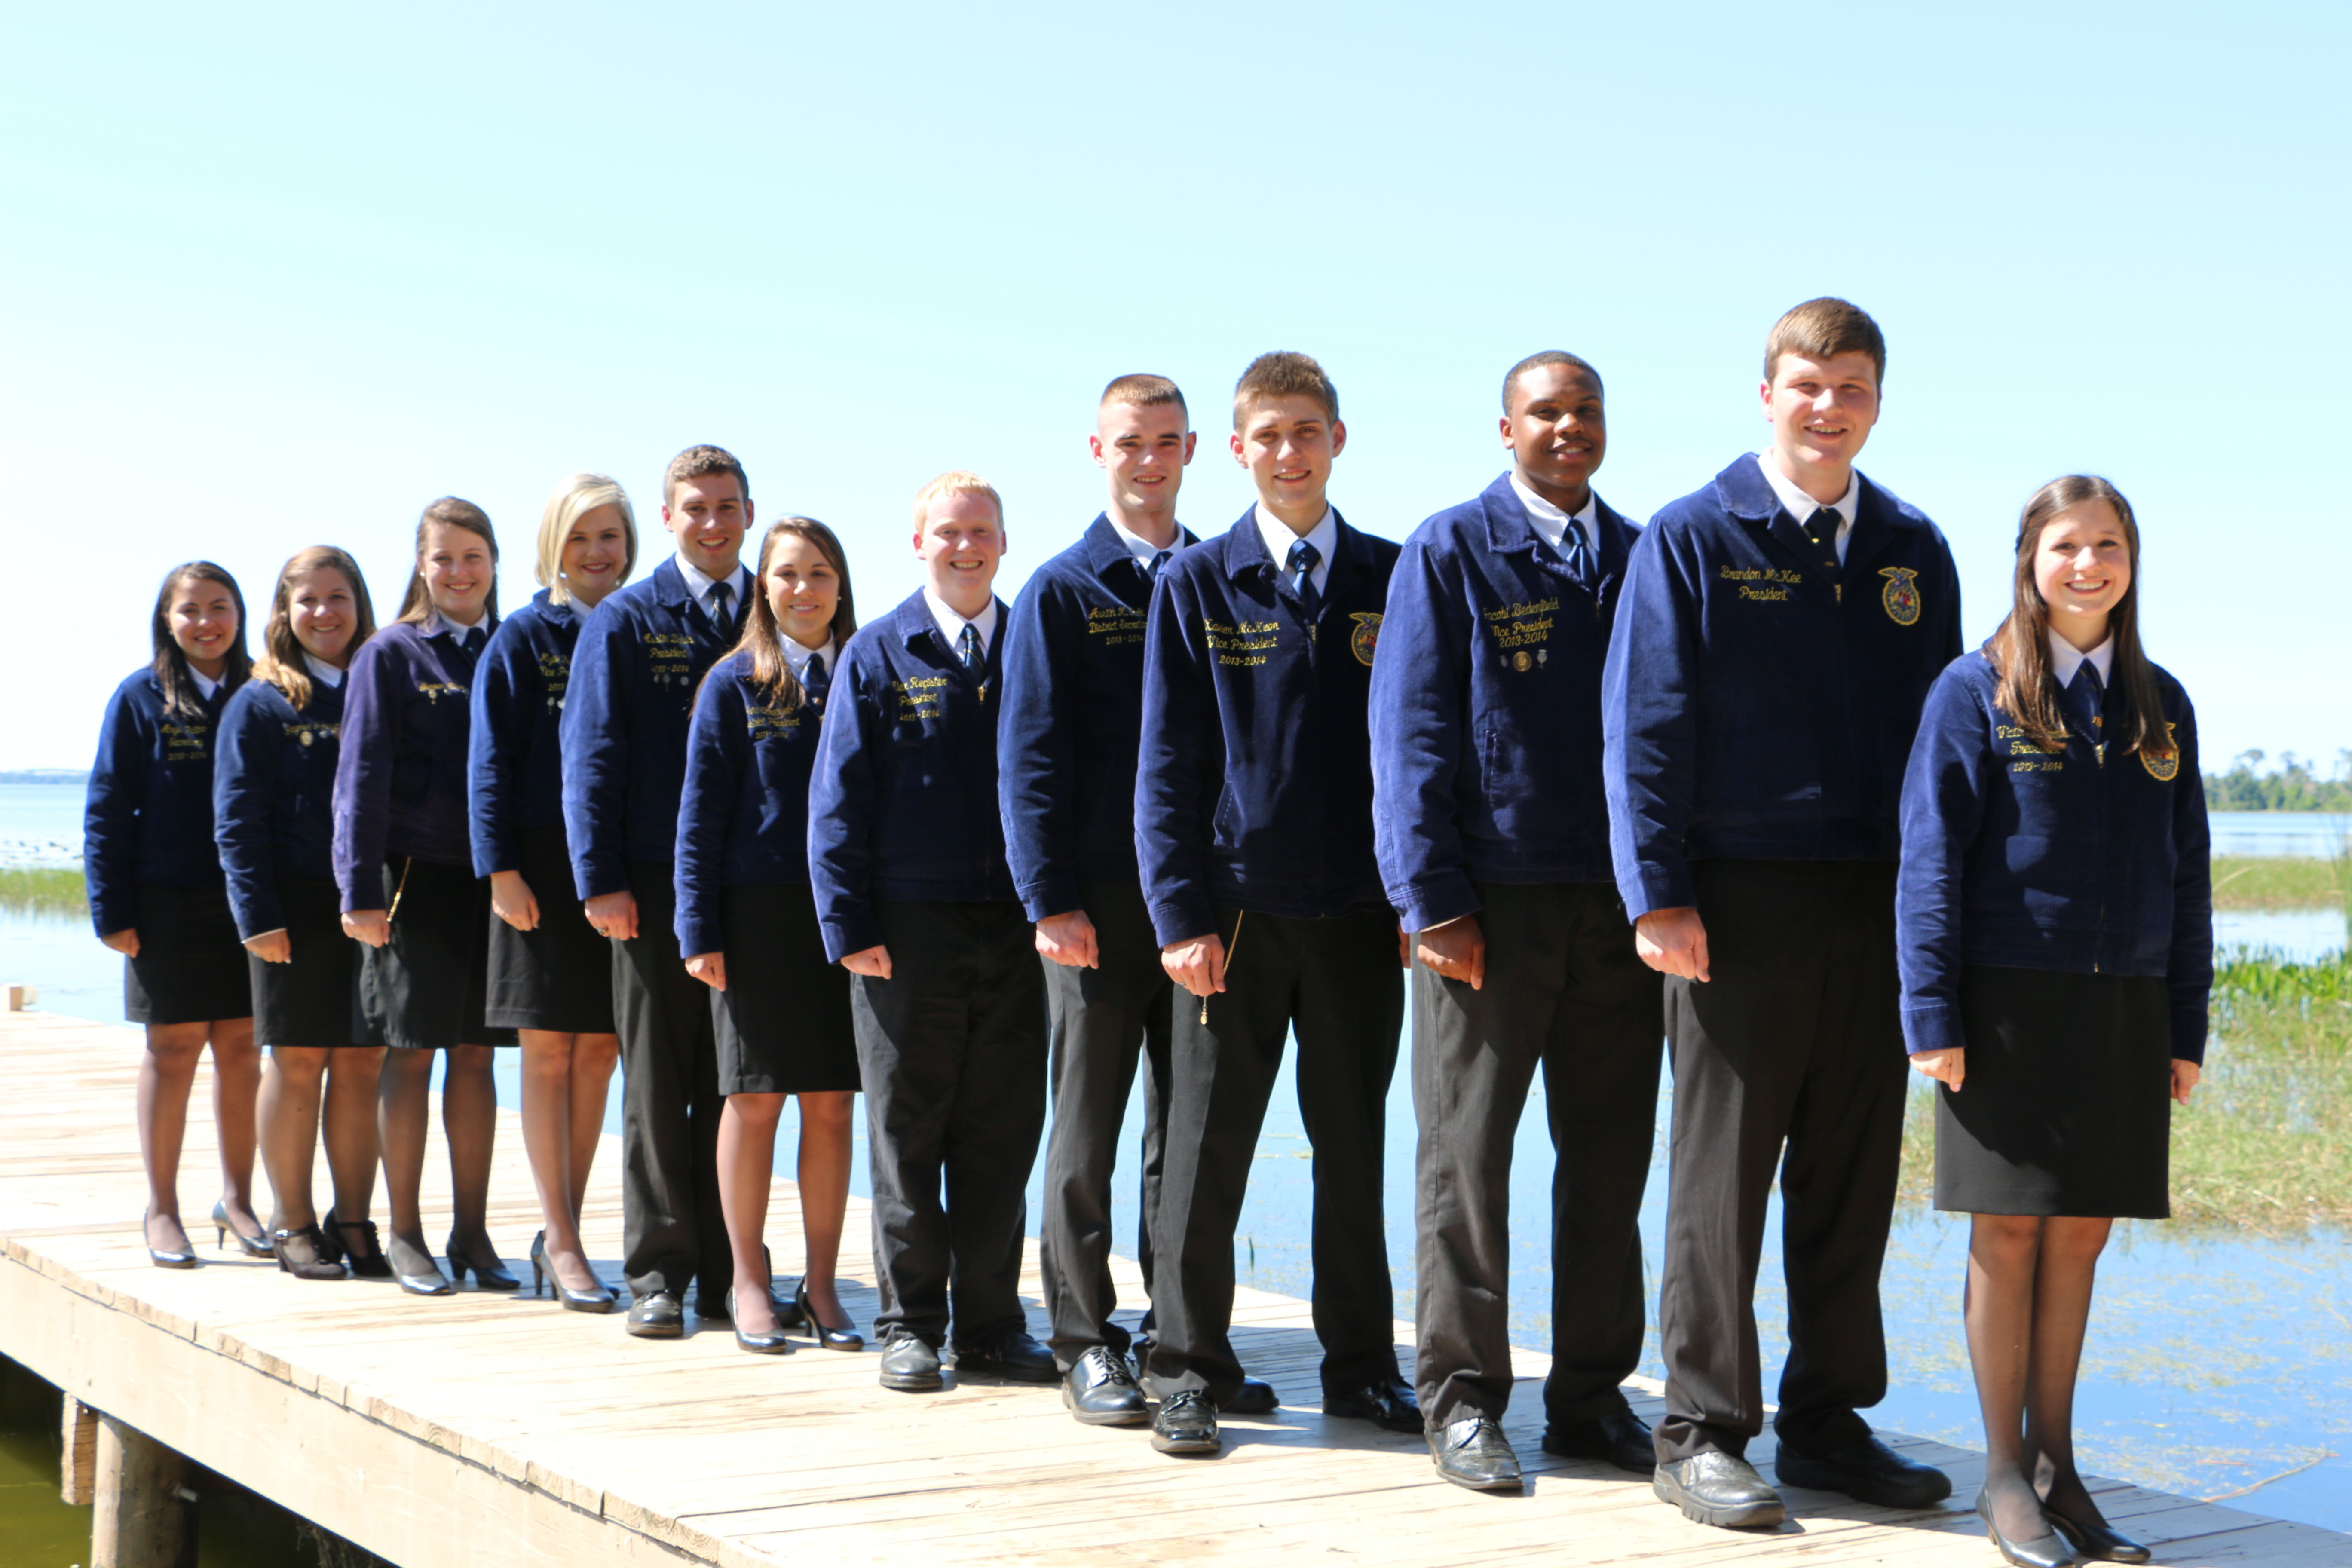 12 FFA Members Slated to Seek State FFA Office this Summer